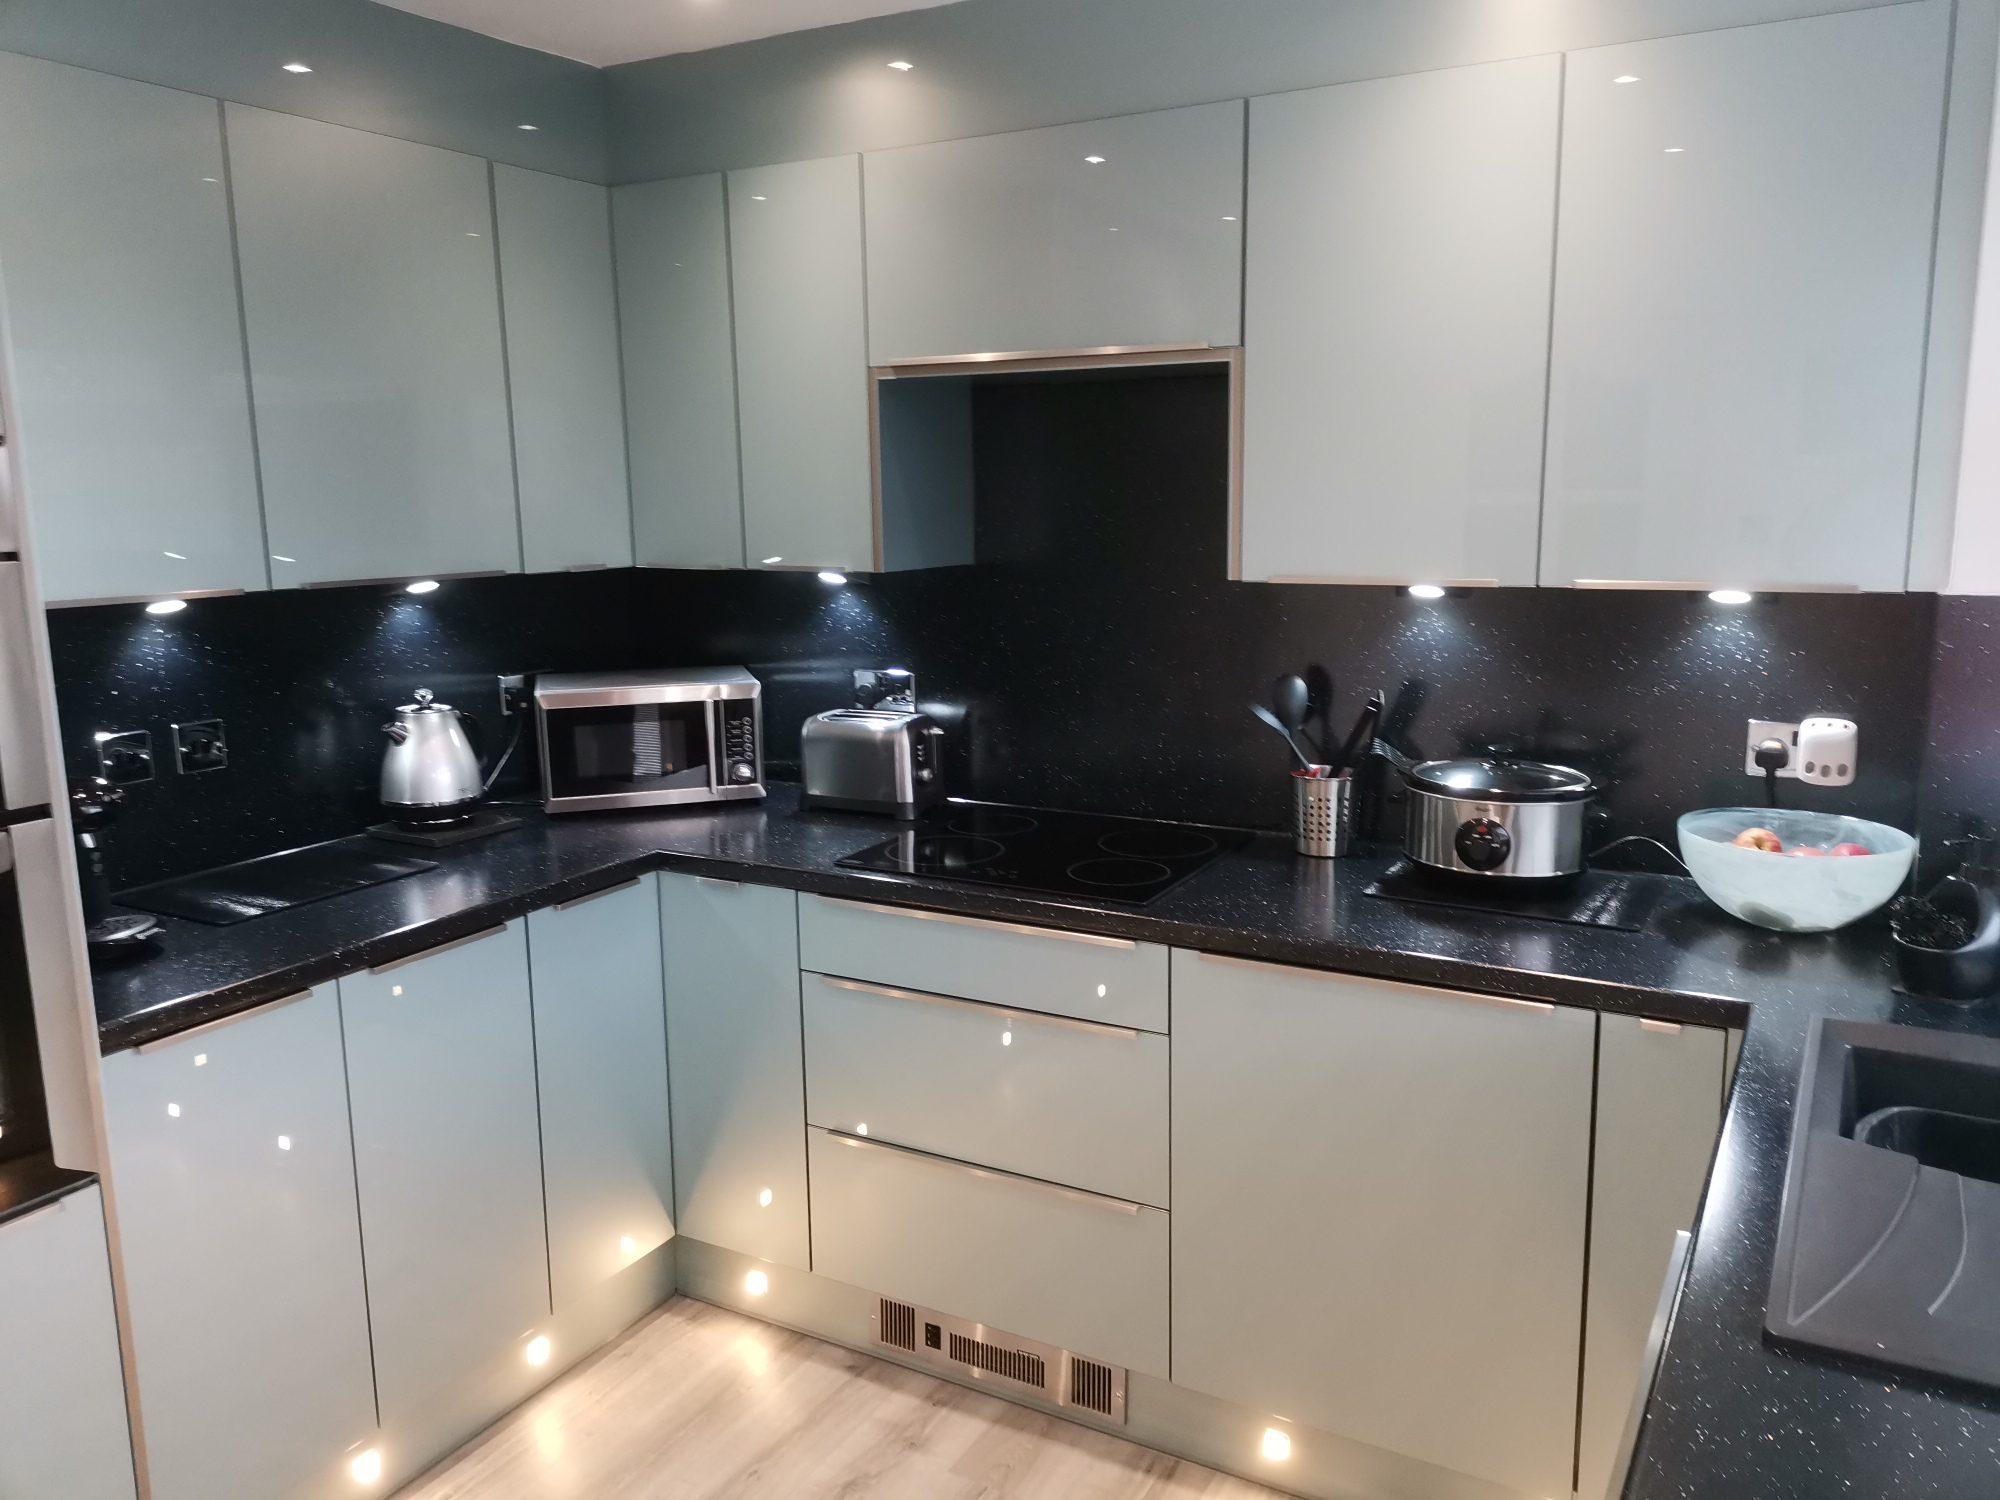 Image of vision kitchens bathrooms home improvements for Mrs P in Falkirk